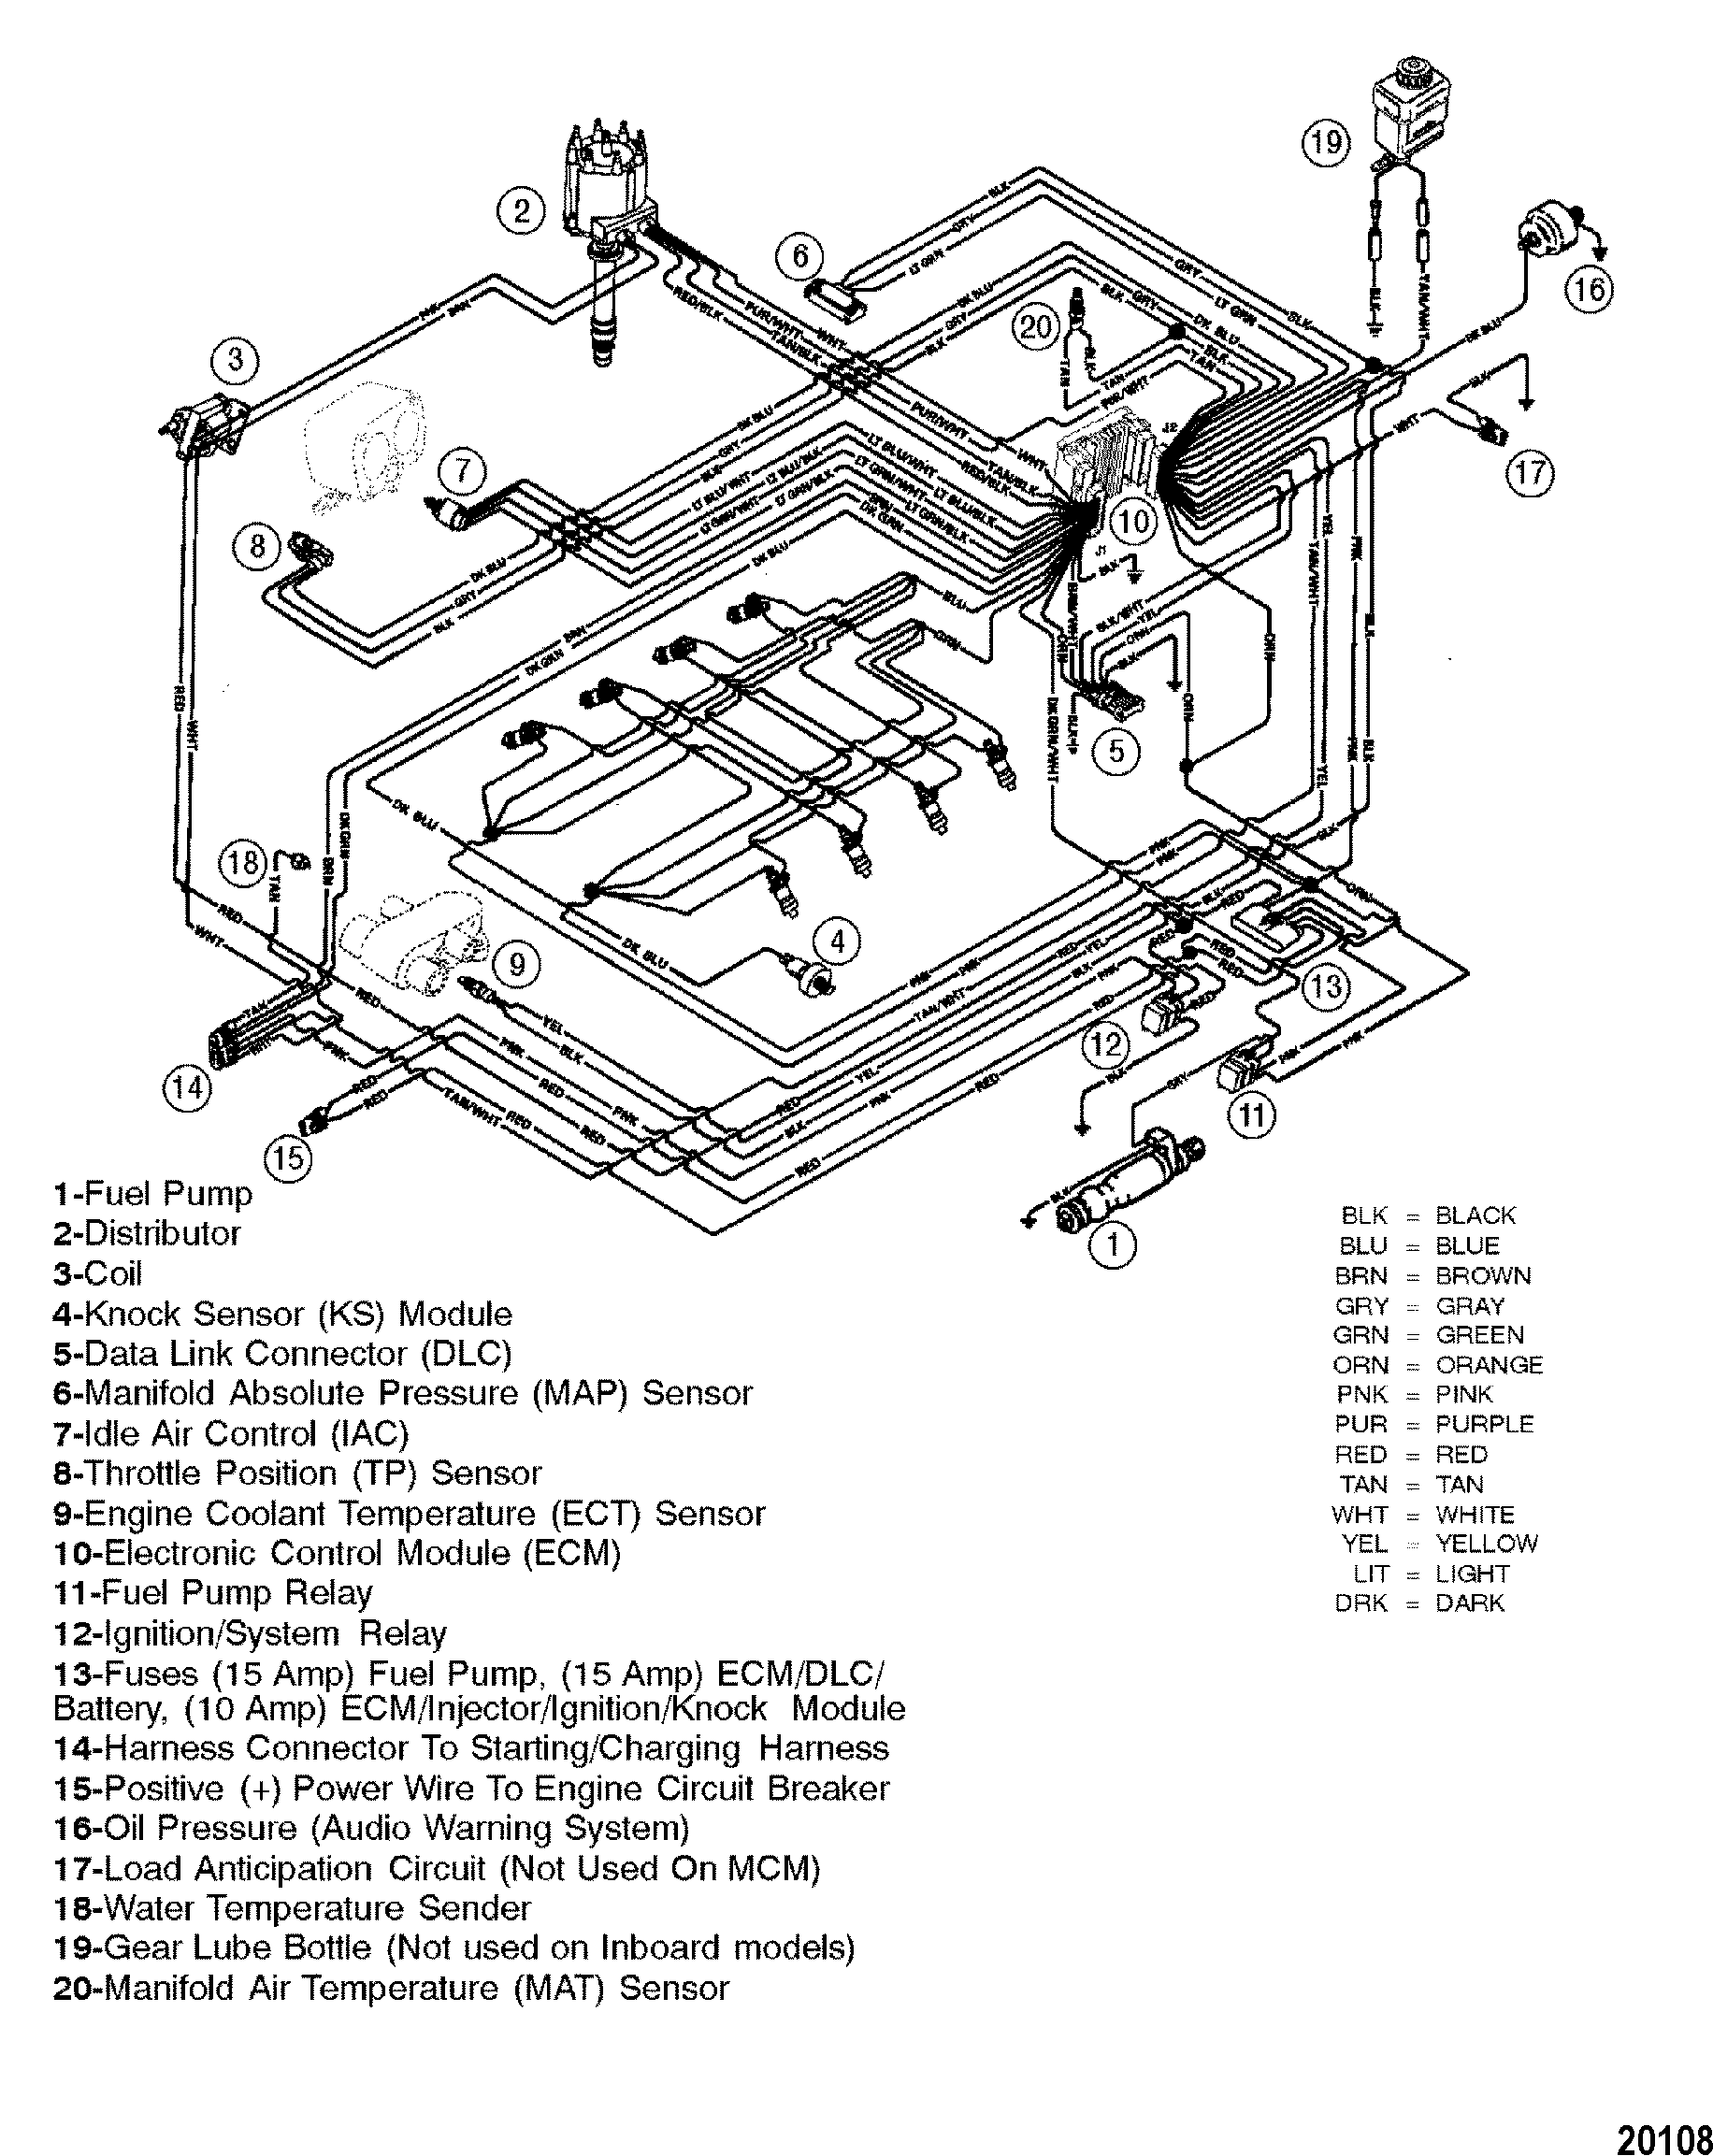 454 engine diagram wiring library rh 64 link garage de